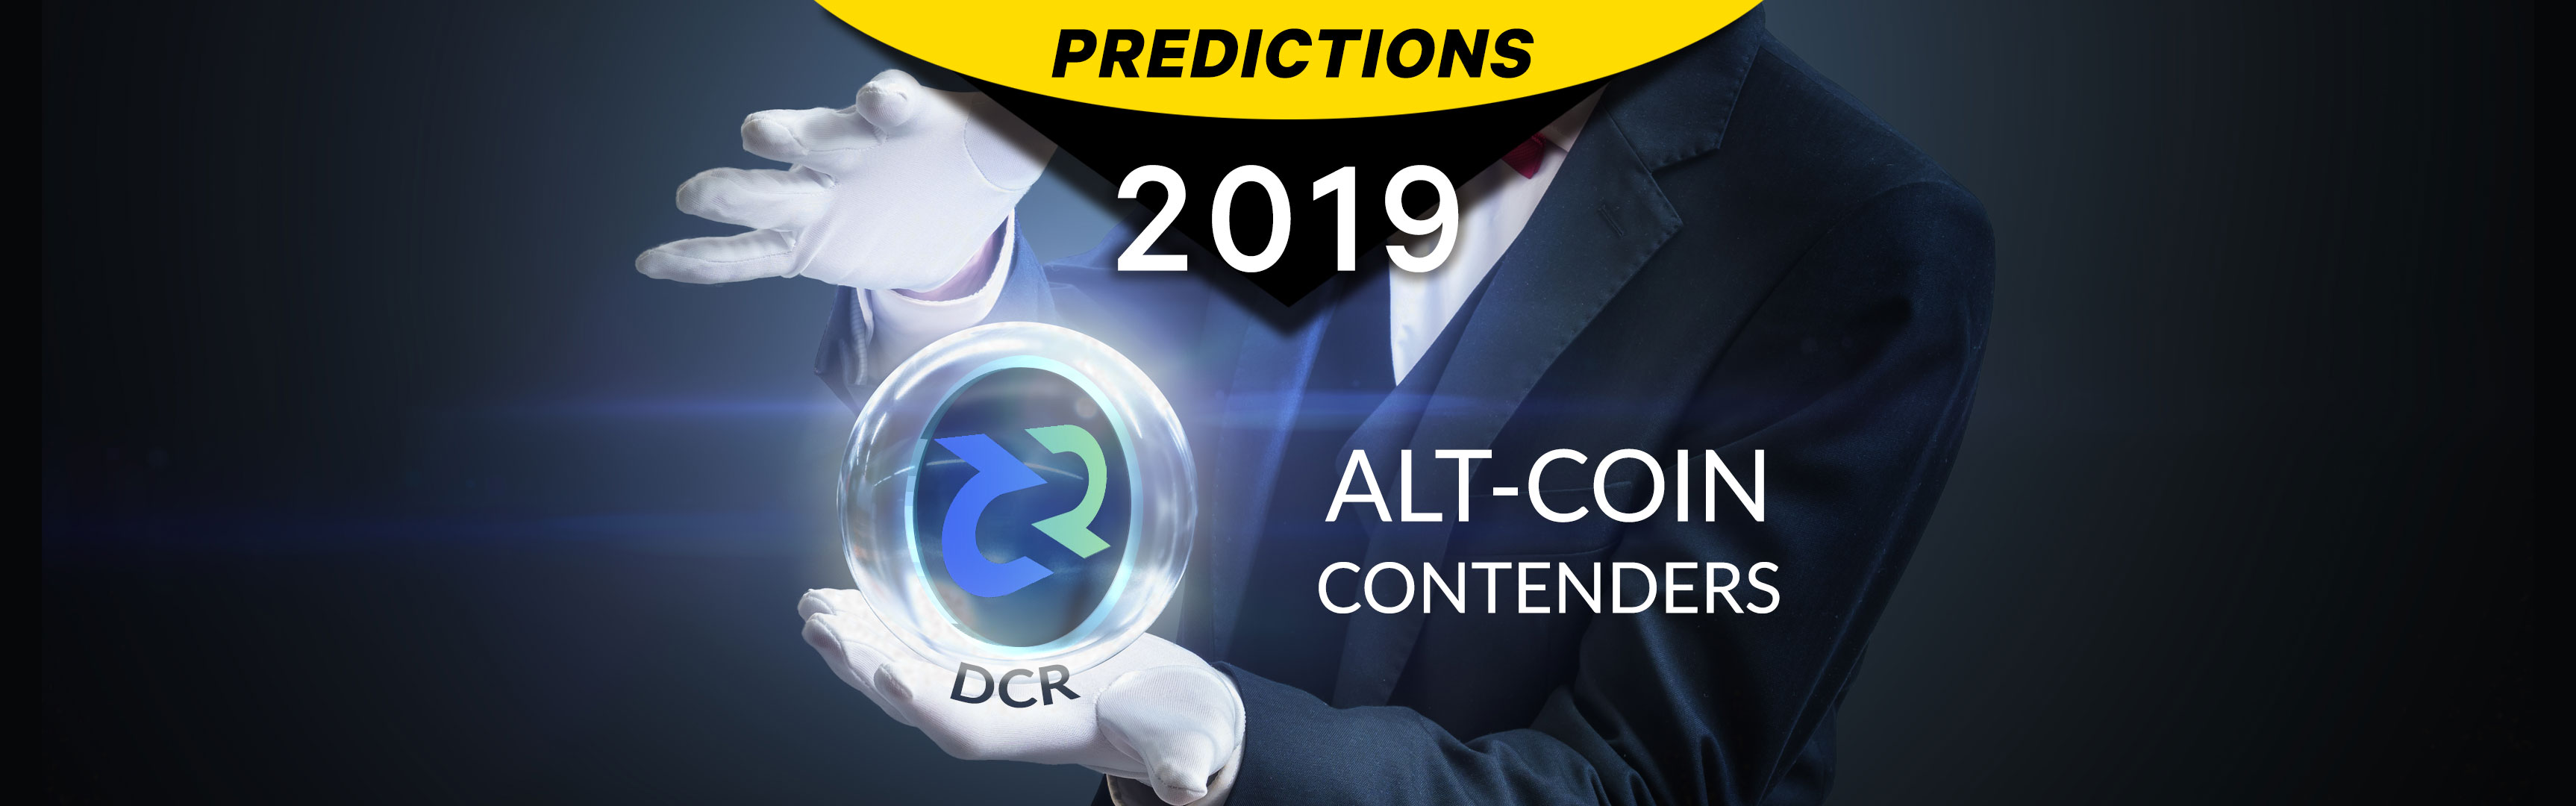 Crypto Predictions 2019: Alt-Coin Contenders WAVES » Brave New Coin